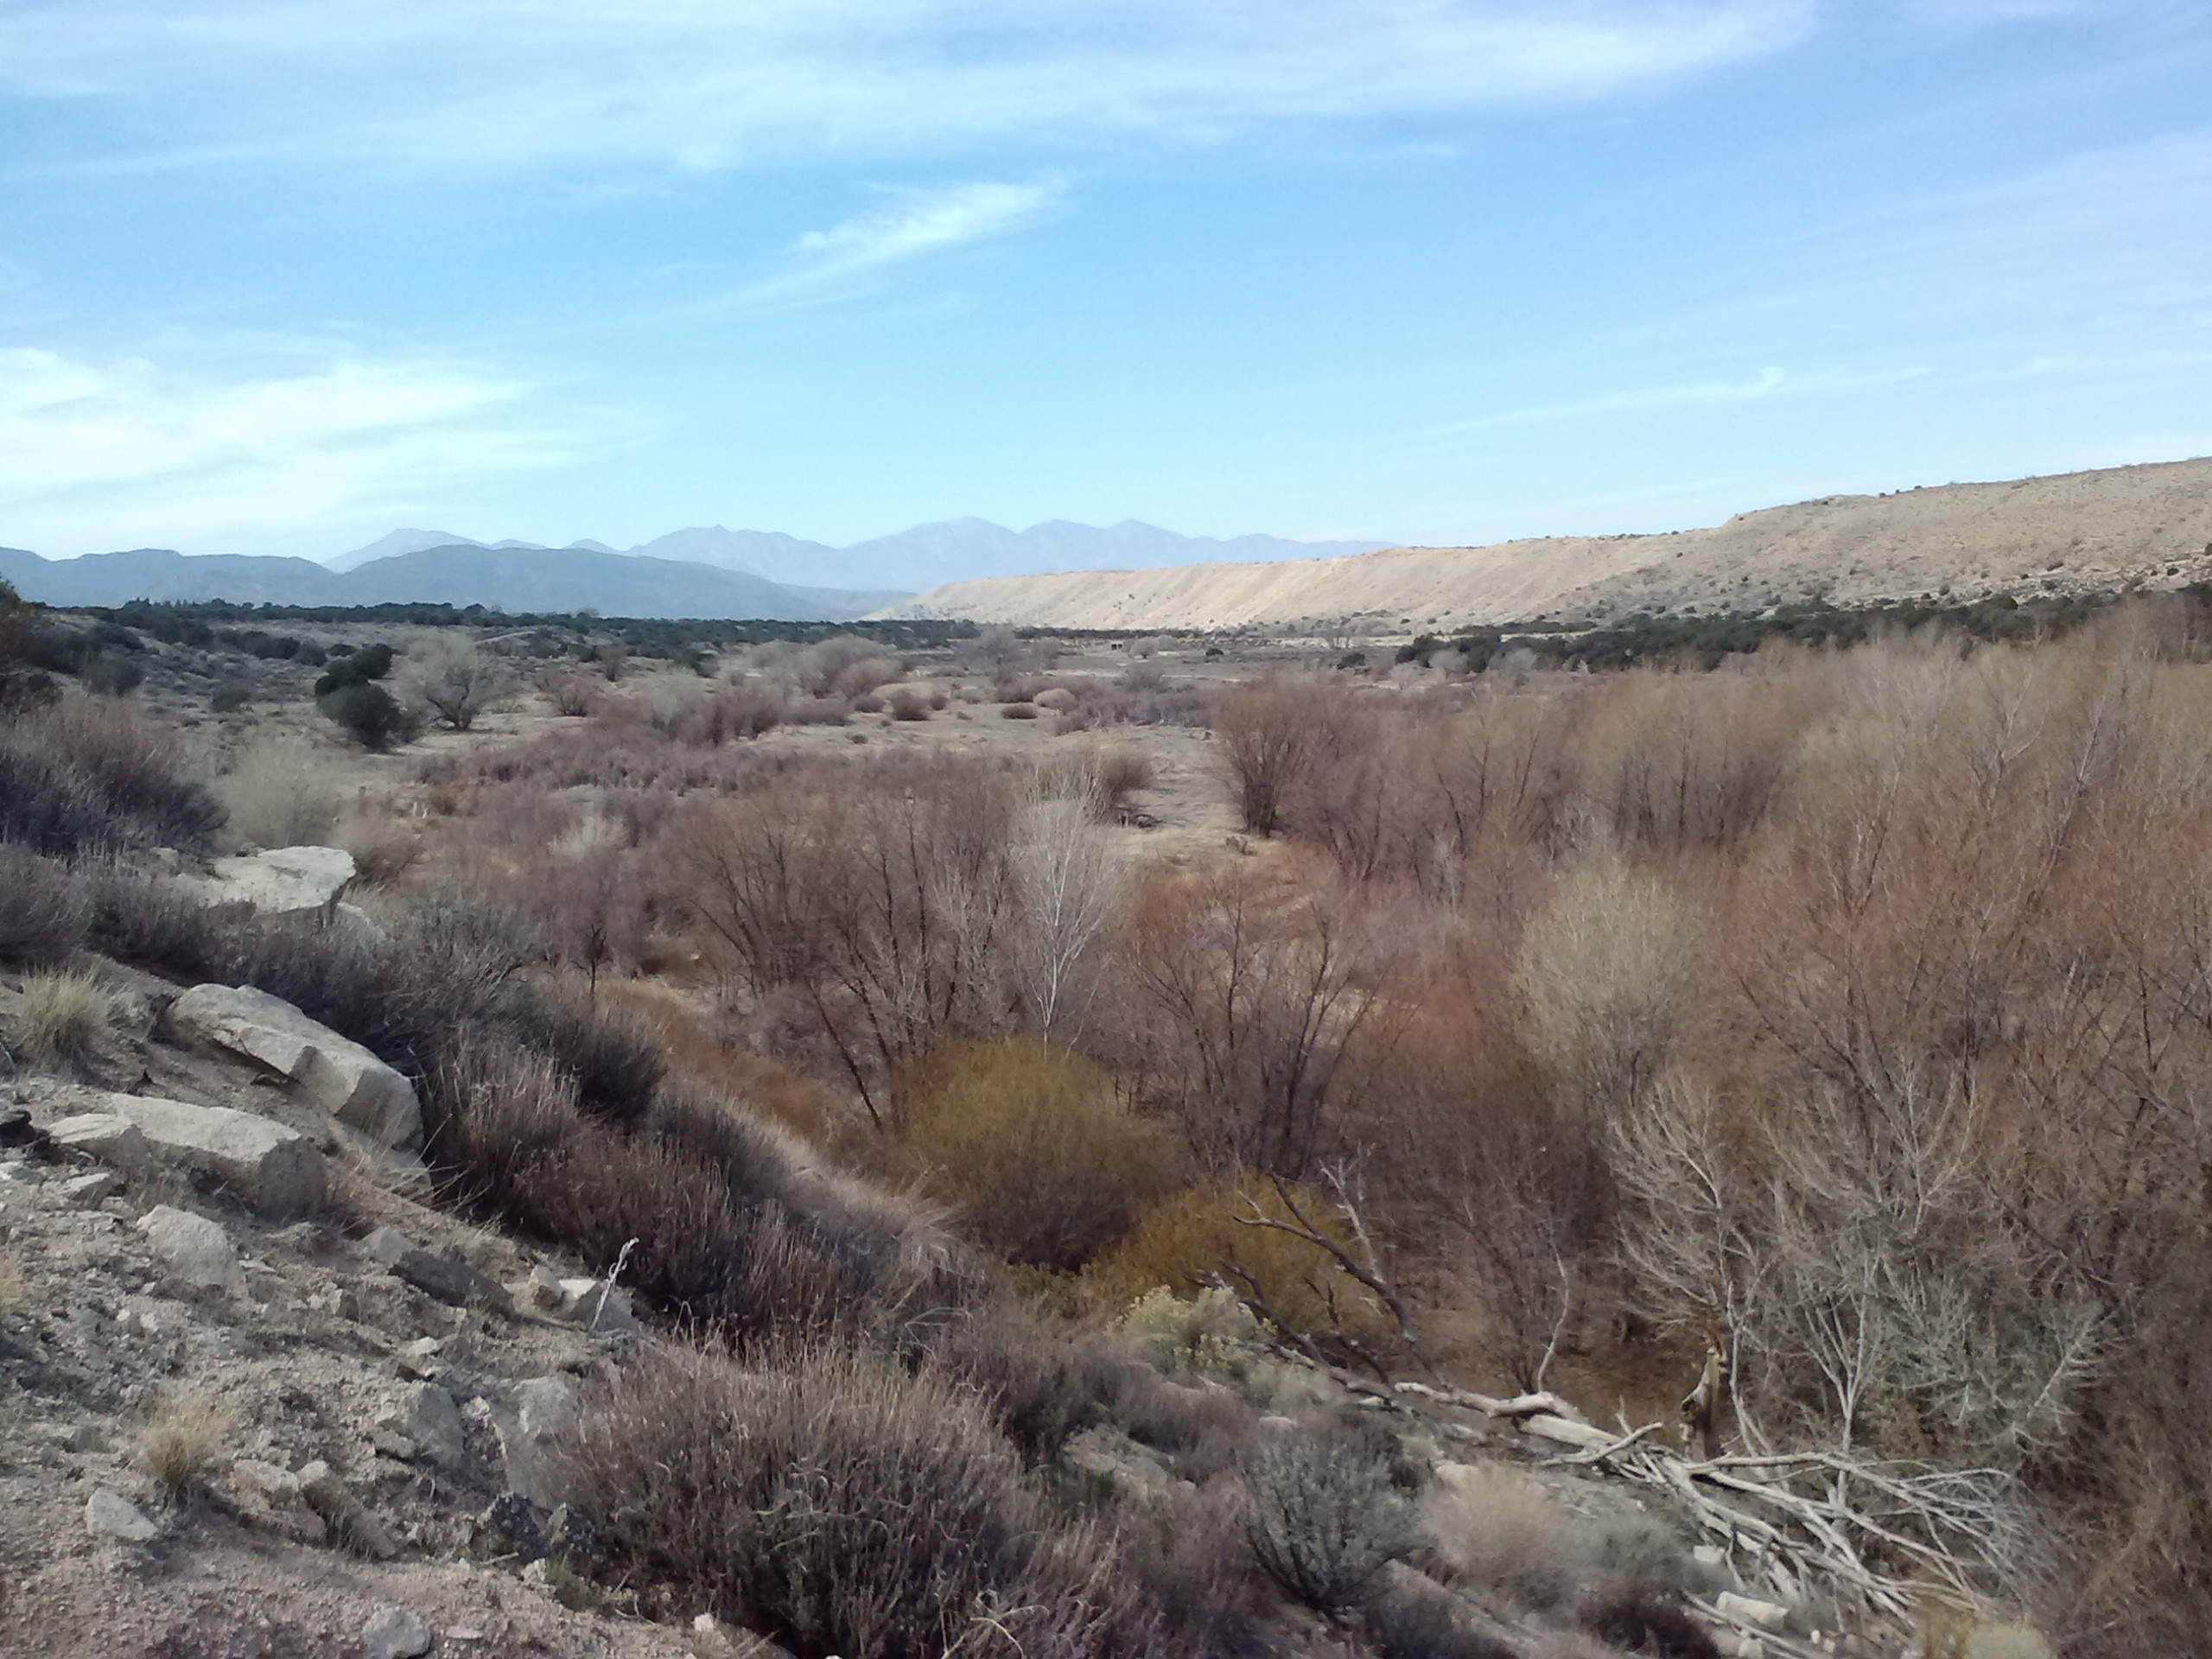 Mojave Forks, looking toward Mt. Baldy